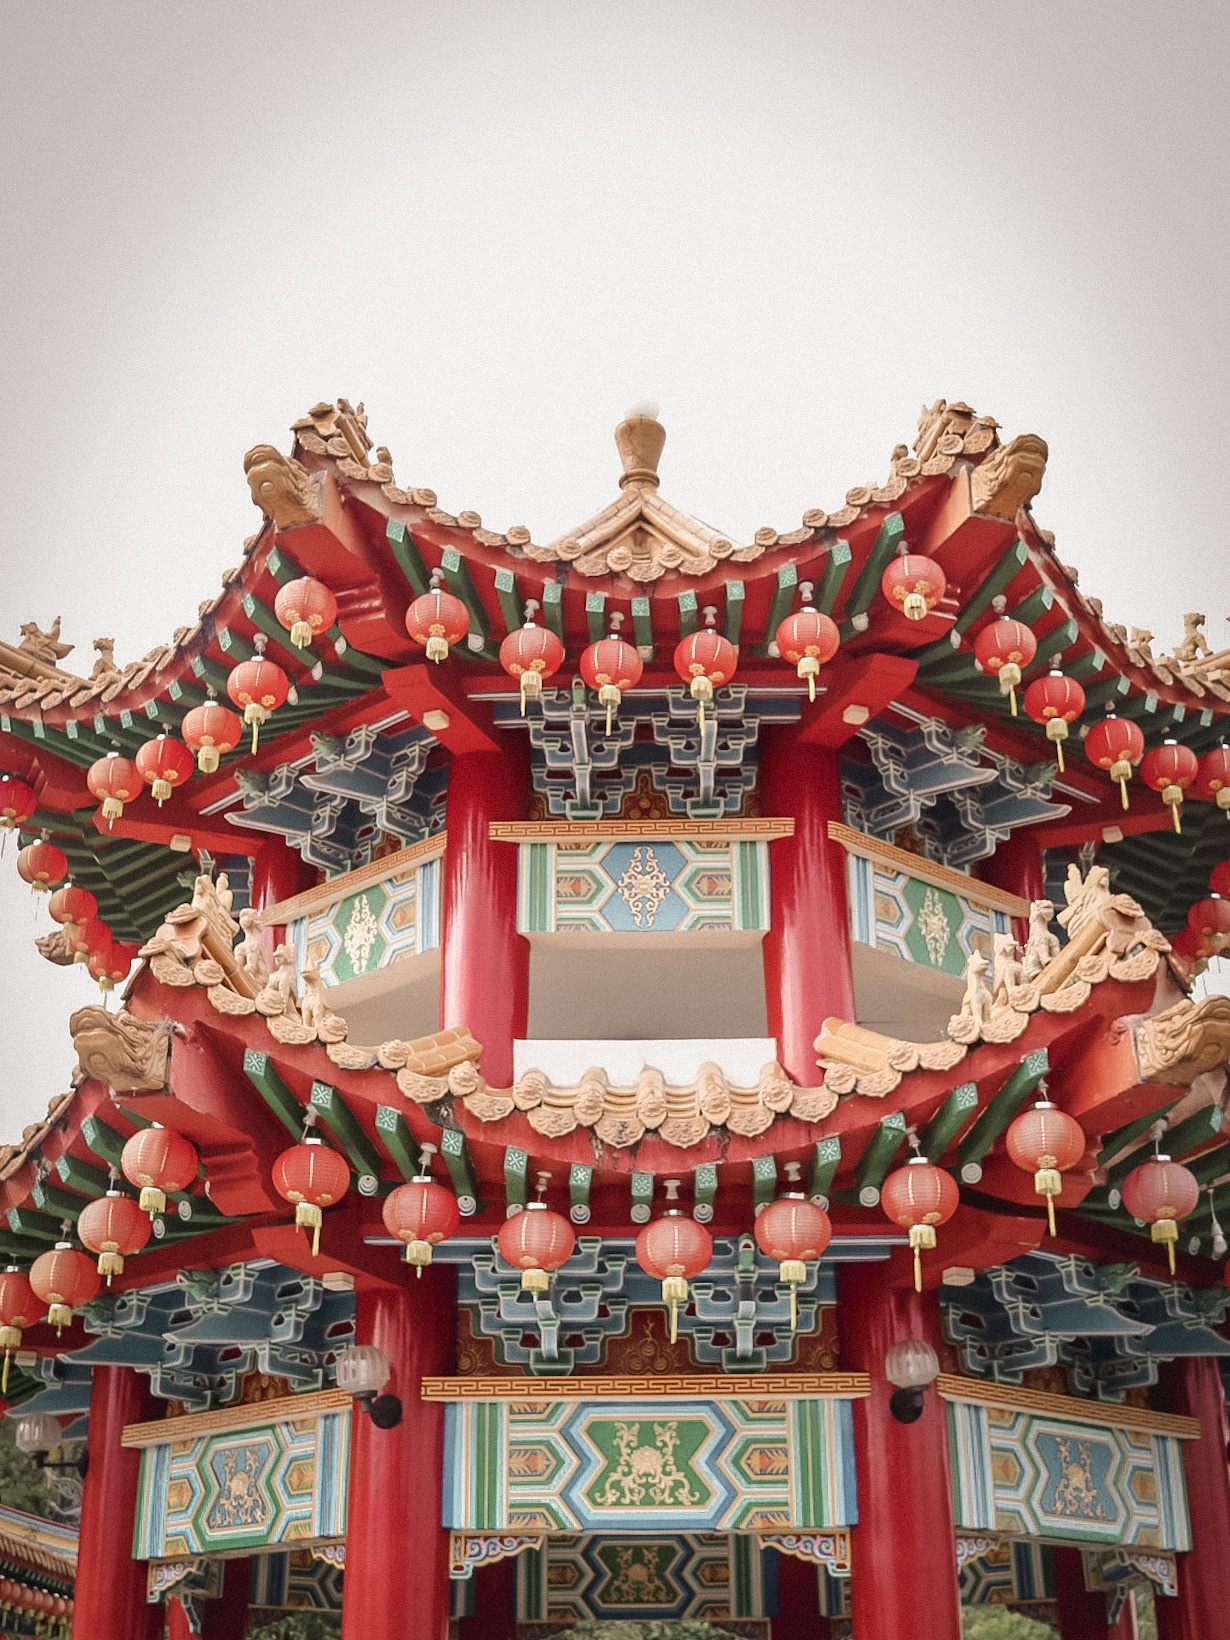 Illustrated by Sade - Colorful red, blue and yellow ornate roof at Thean Hou Temple.